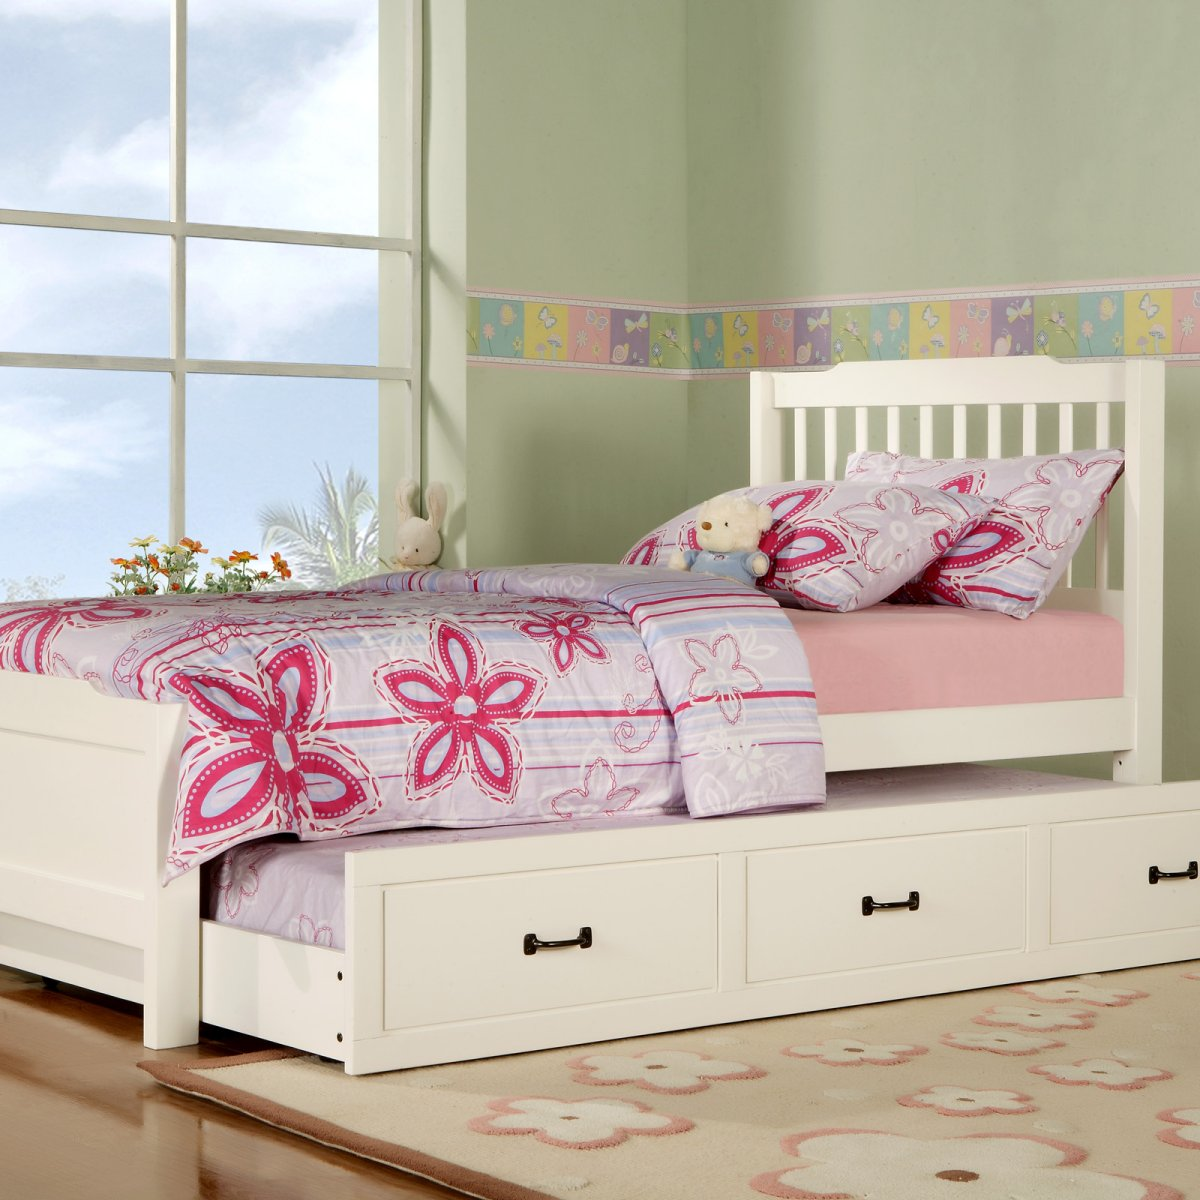 white wooden trundle beds for children with pink purple bedding set and storage underneath plus floral & Trundle Beds for Children to Create an Accessible Bedroom Space ...